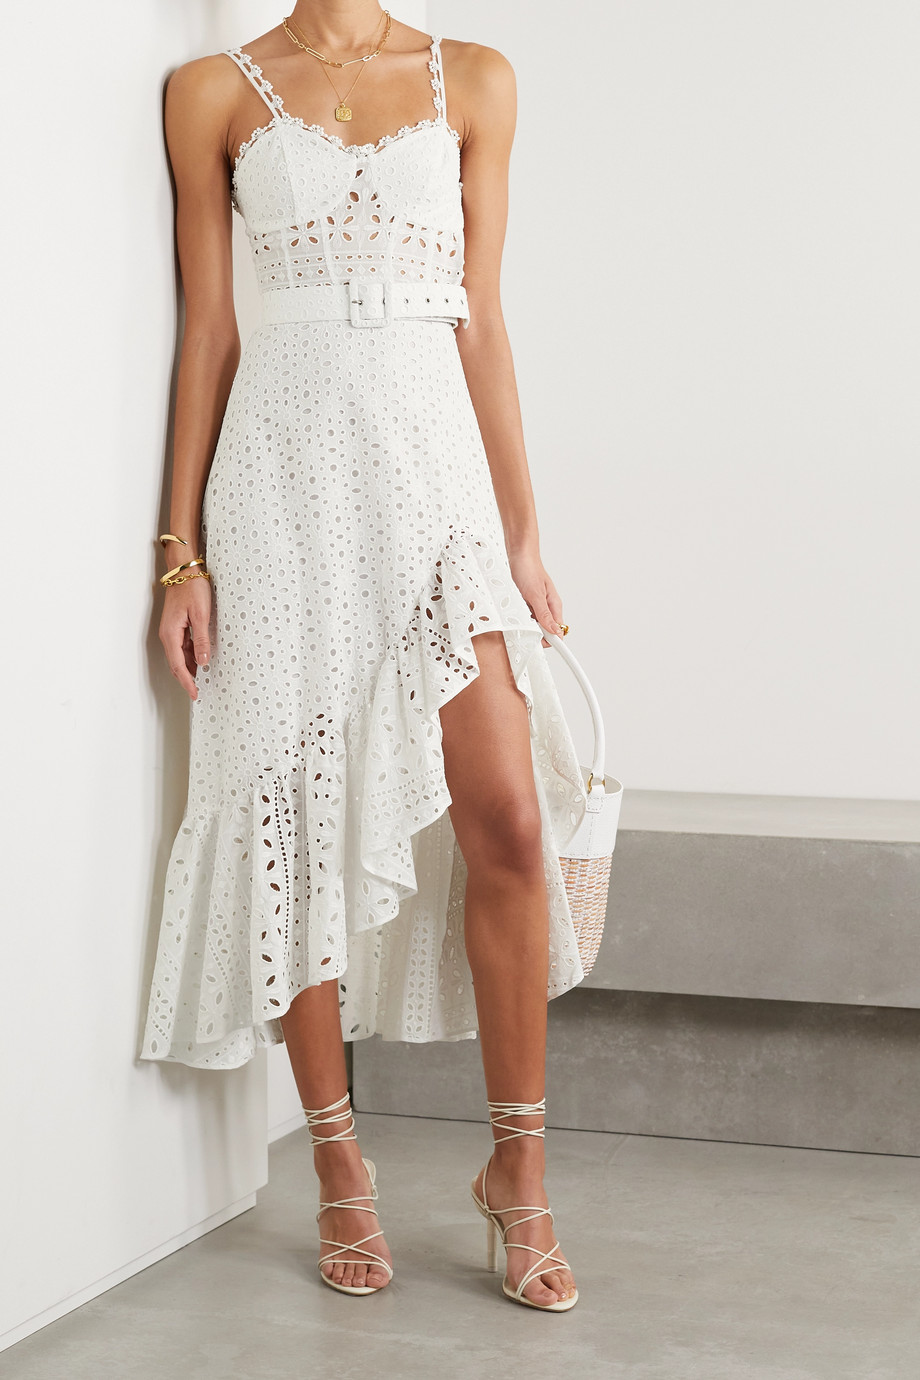 Charo Ruiz Julie belted ruffled broderie anglaise cotton-blend midi dress